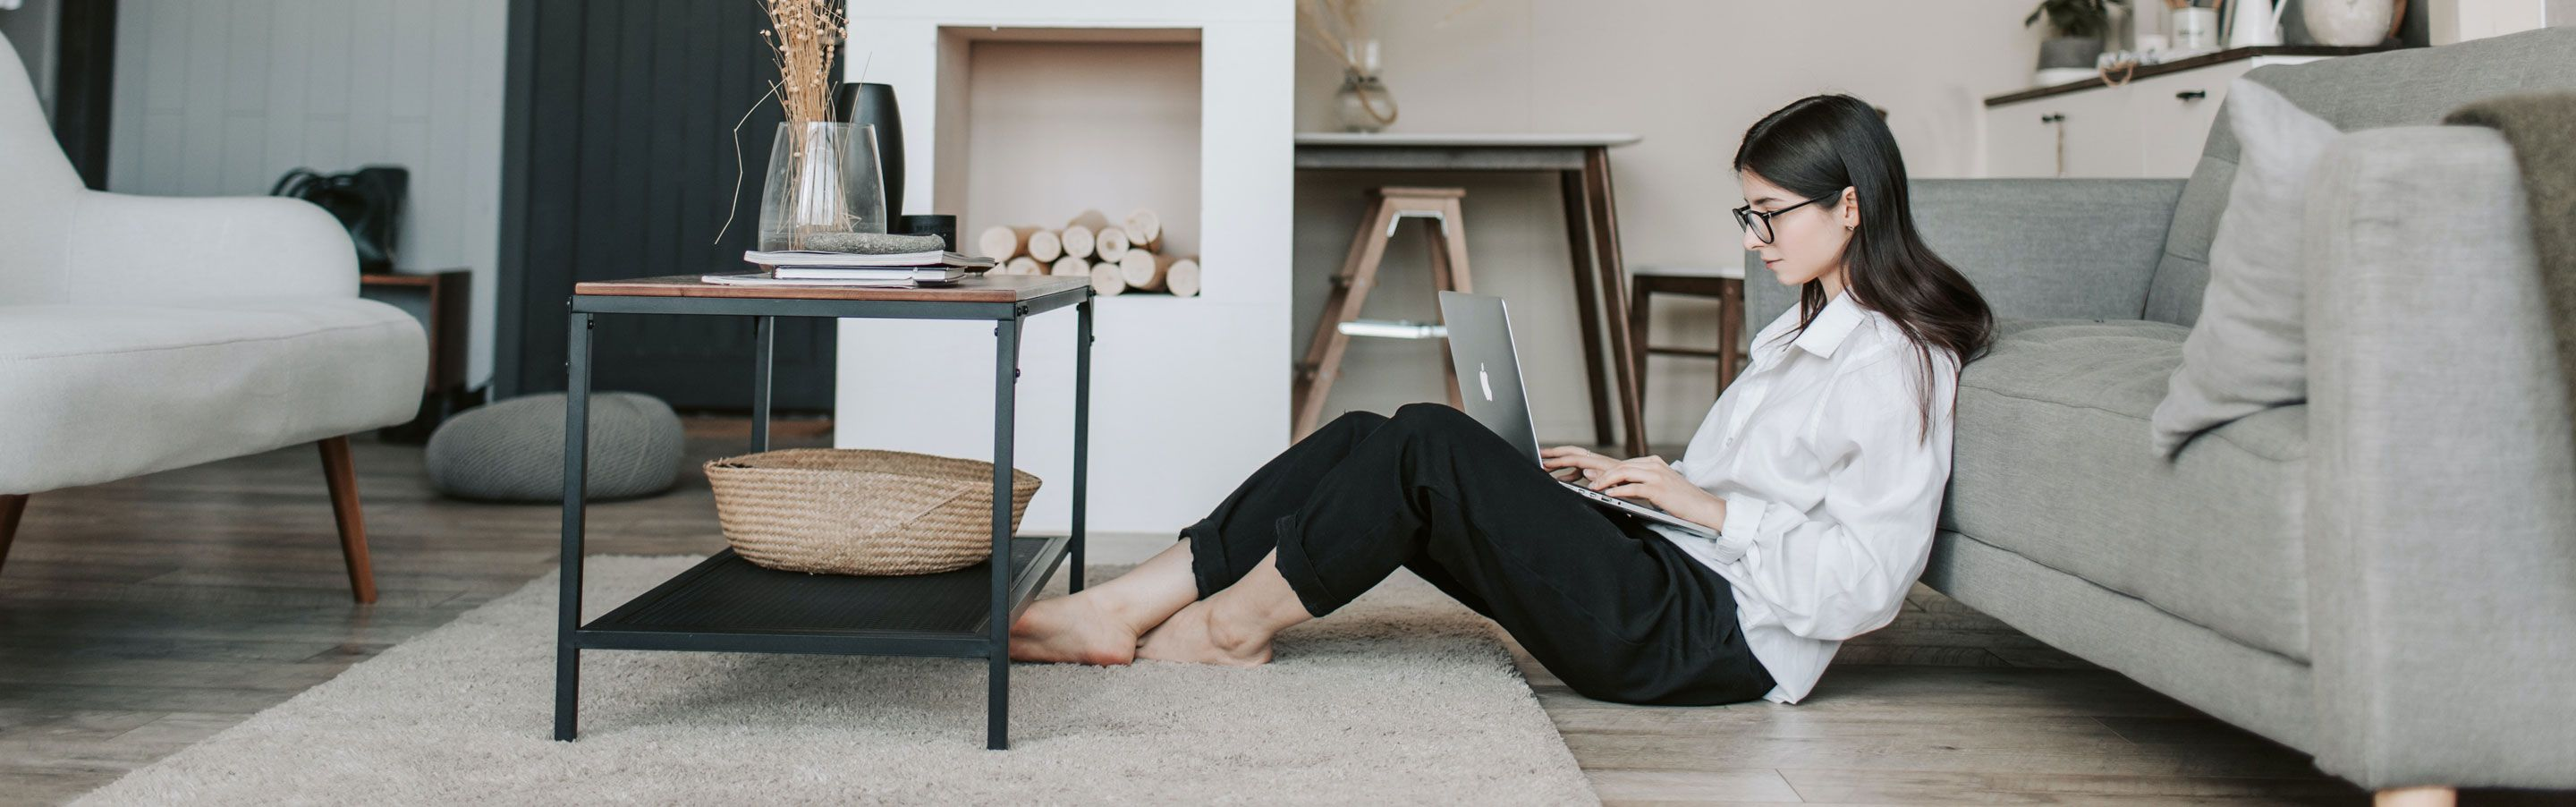 woman searching tips how to be productive working from home